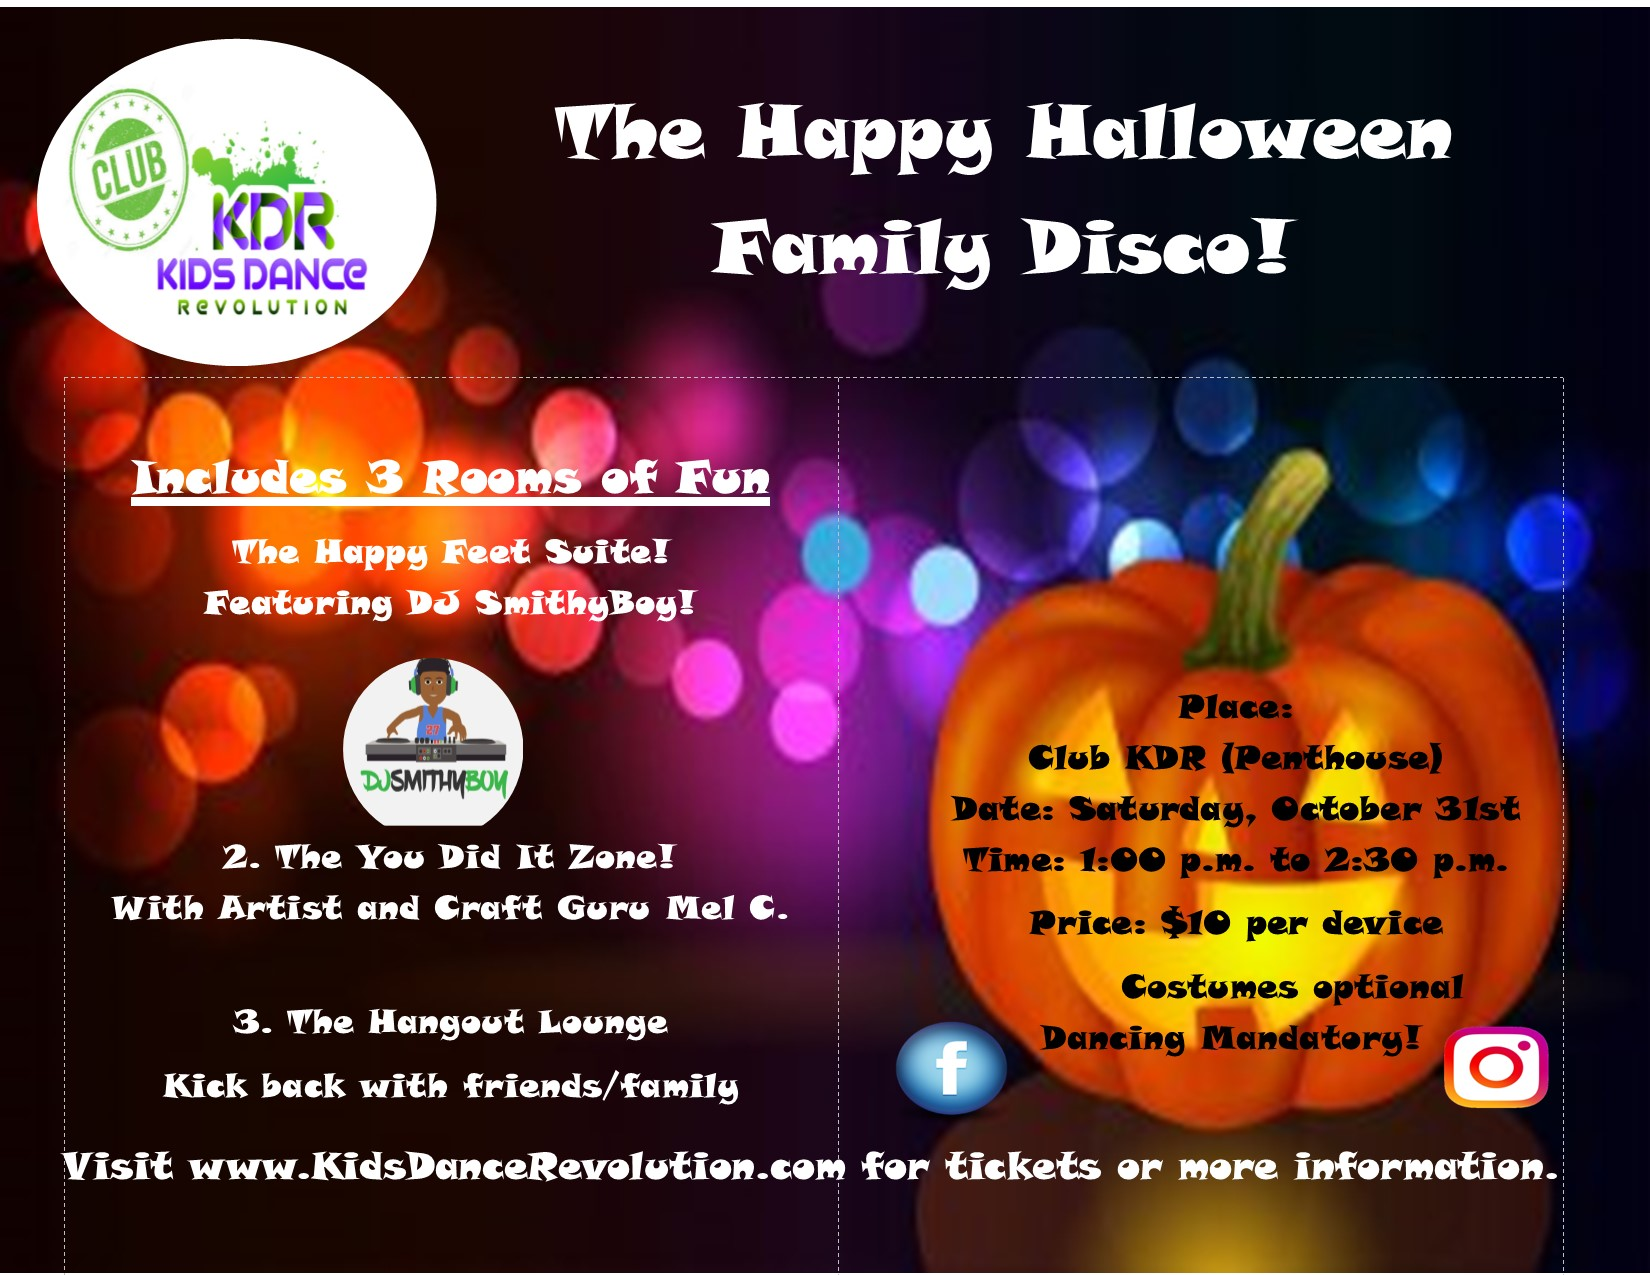 ONLINE The Happy Halloween Family Disco! at Club KDR (Penthouse)